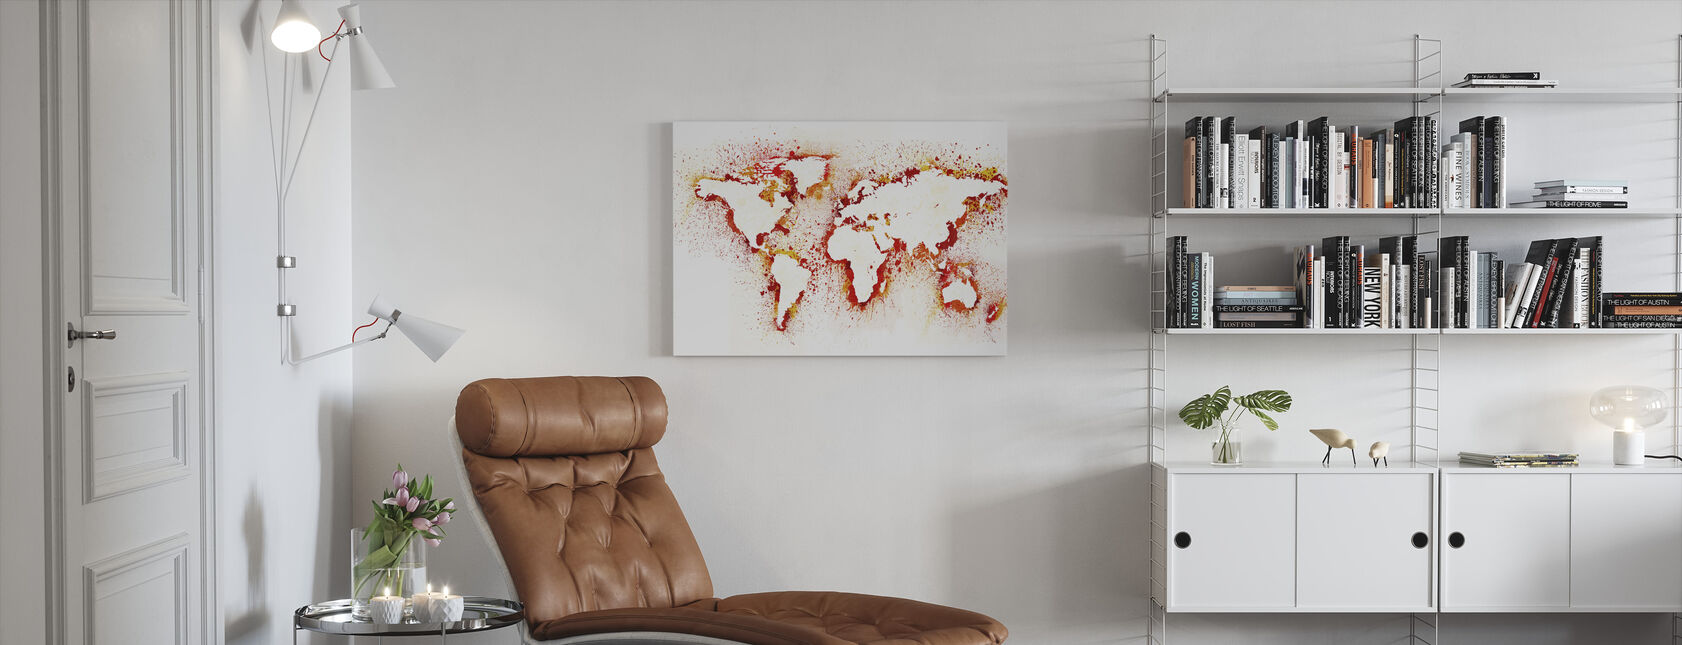 Abstract World Map - Canvas print - Living Room